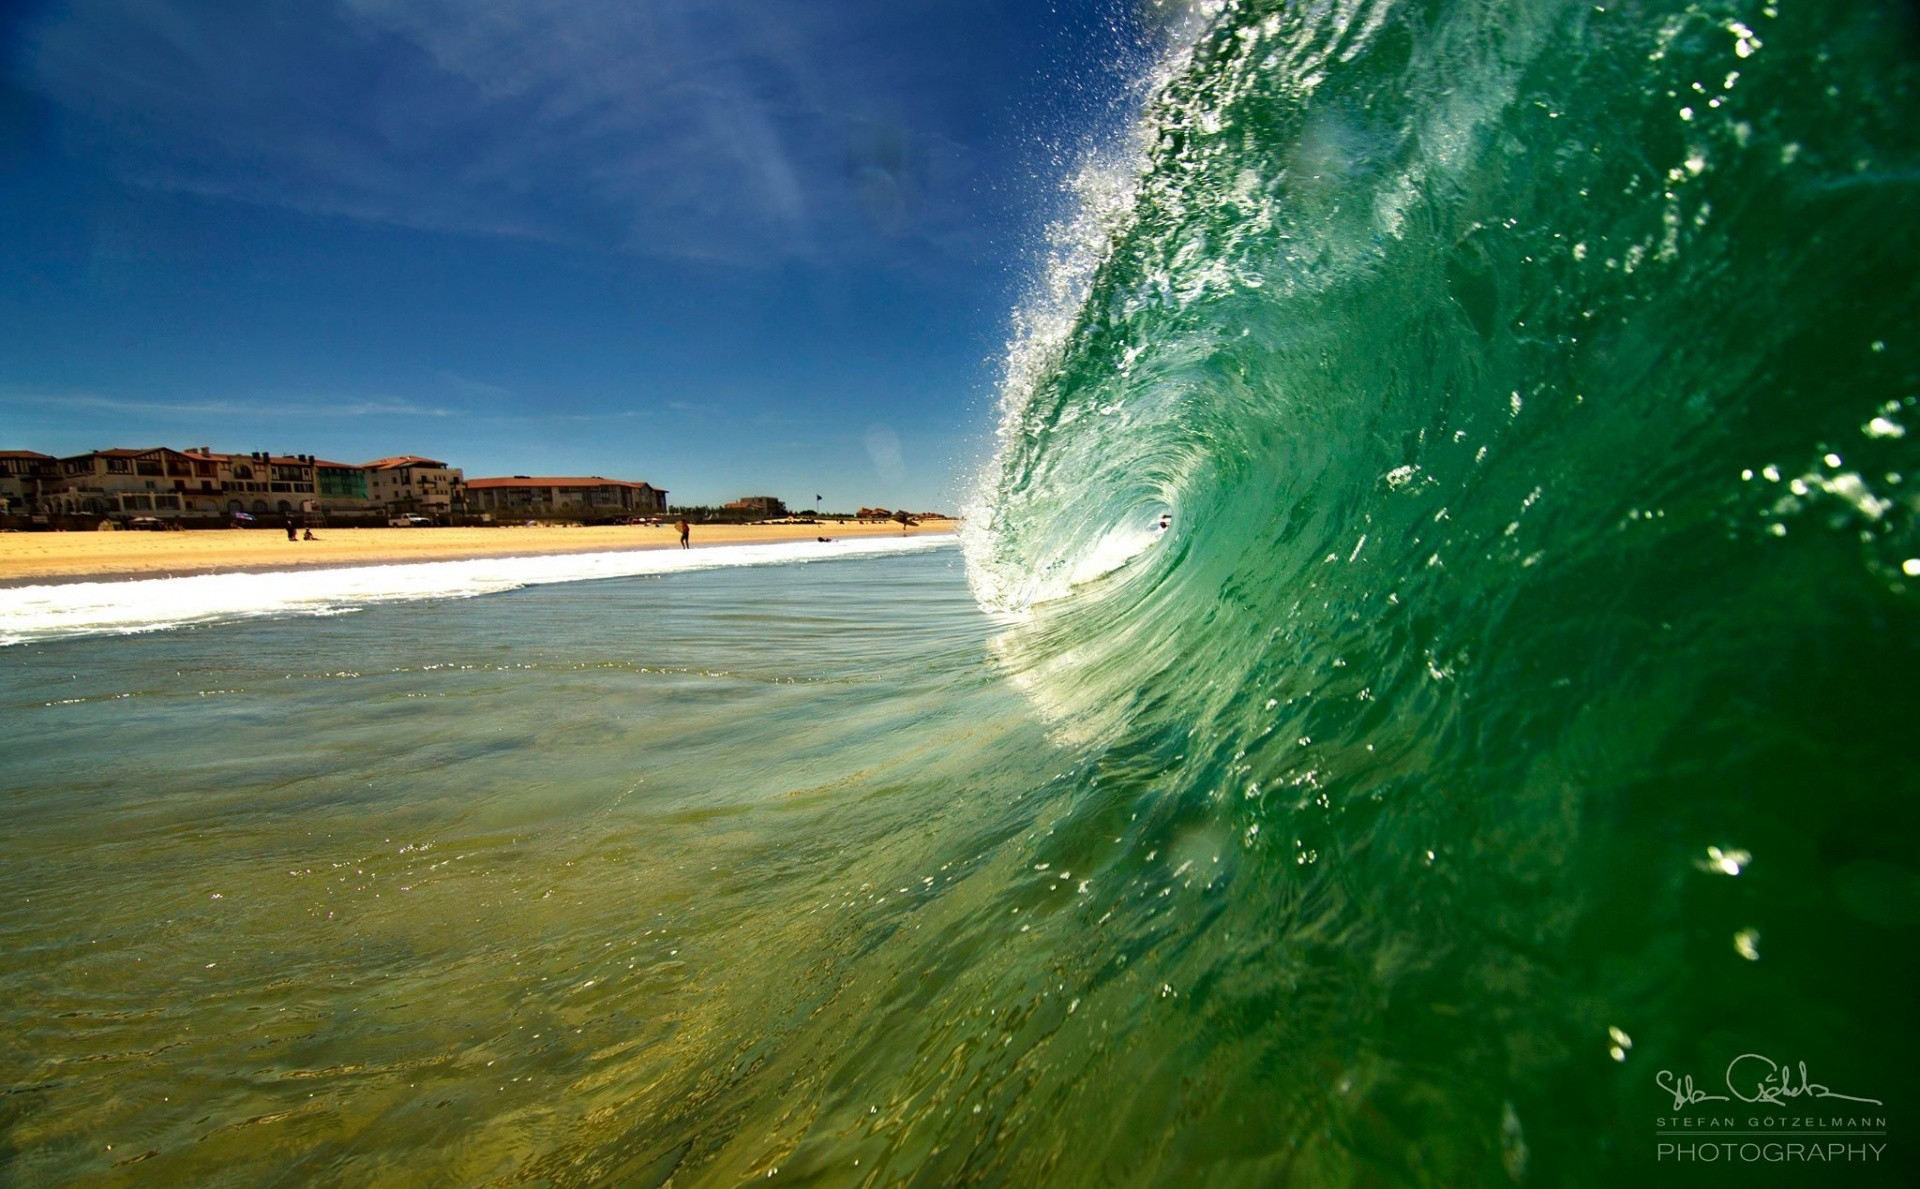 Stefan Götzelmann's photo of Hossegor (La Graviere)